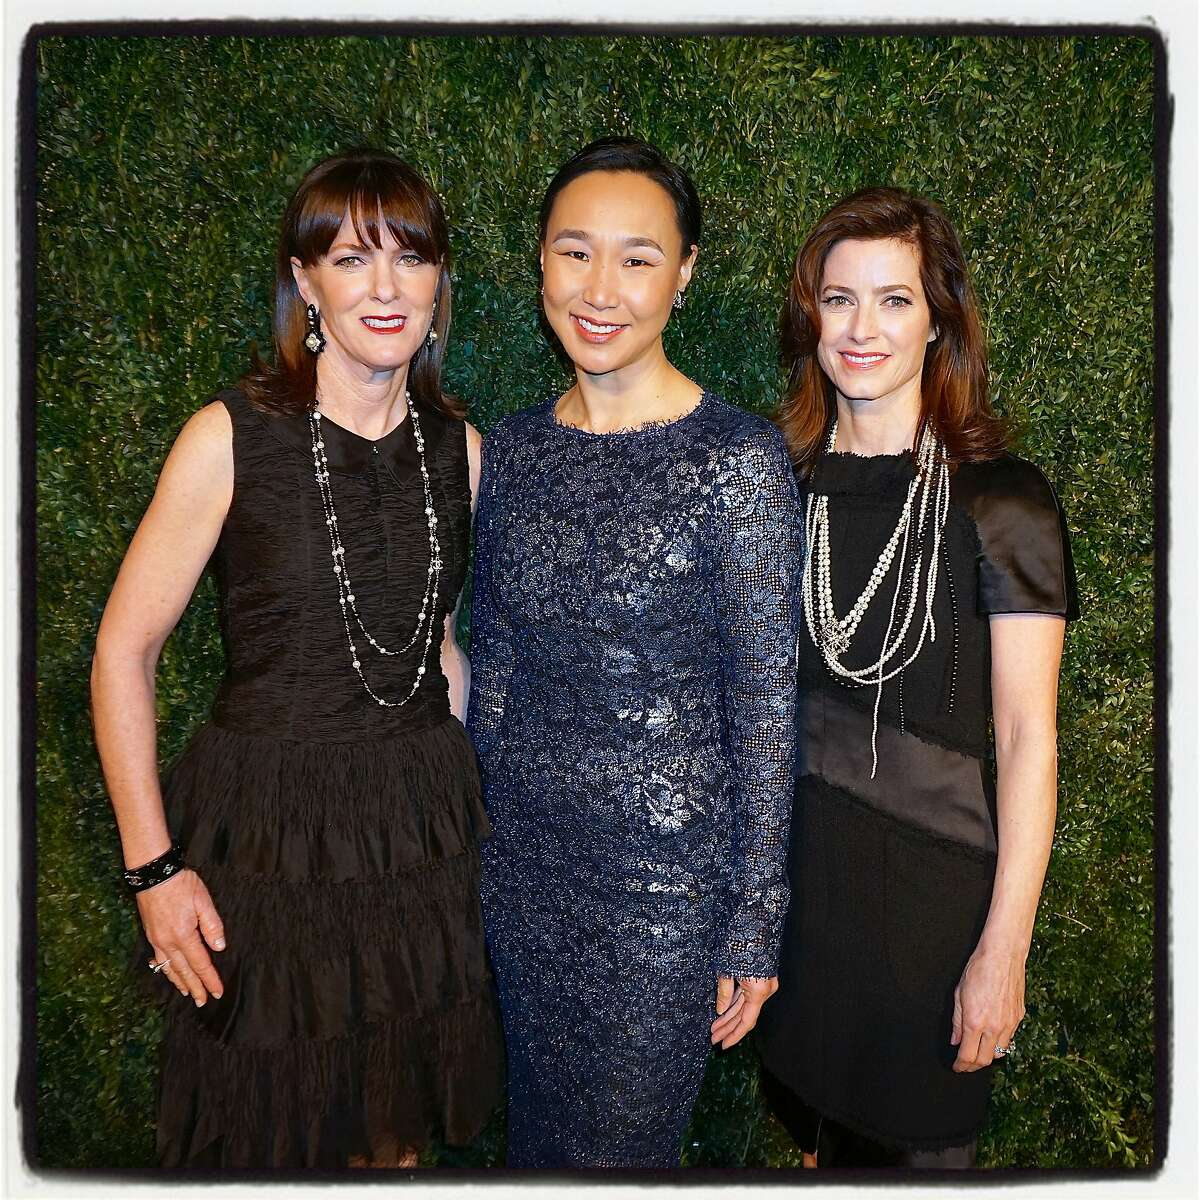 CPMC 2020 Gala co-chairs and Foundation trustees Allison Speer (left) with Dr. Carolyn Chang and Carol Bonnie at Pier 35. Feb 2016.